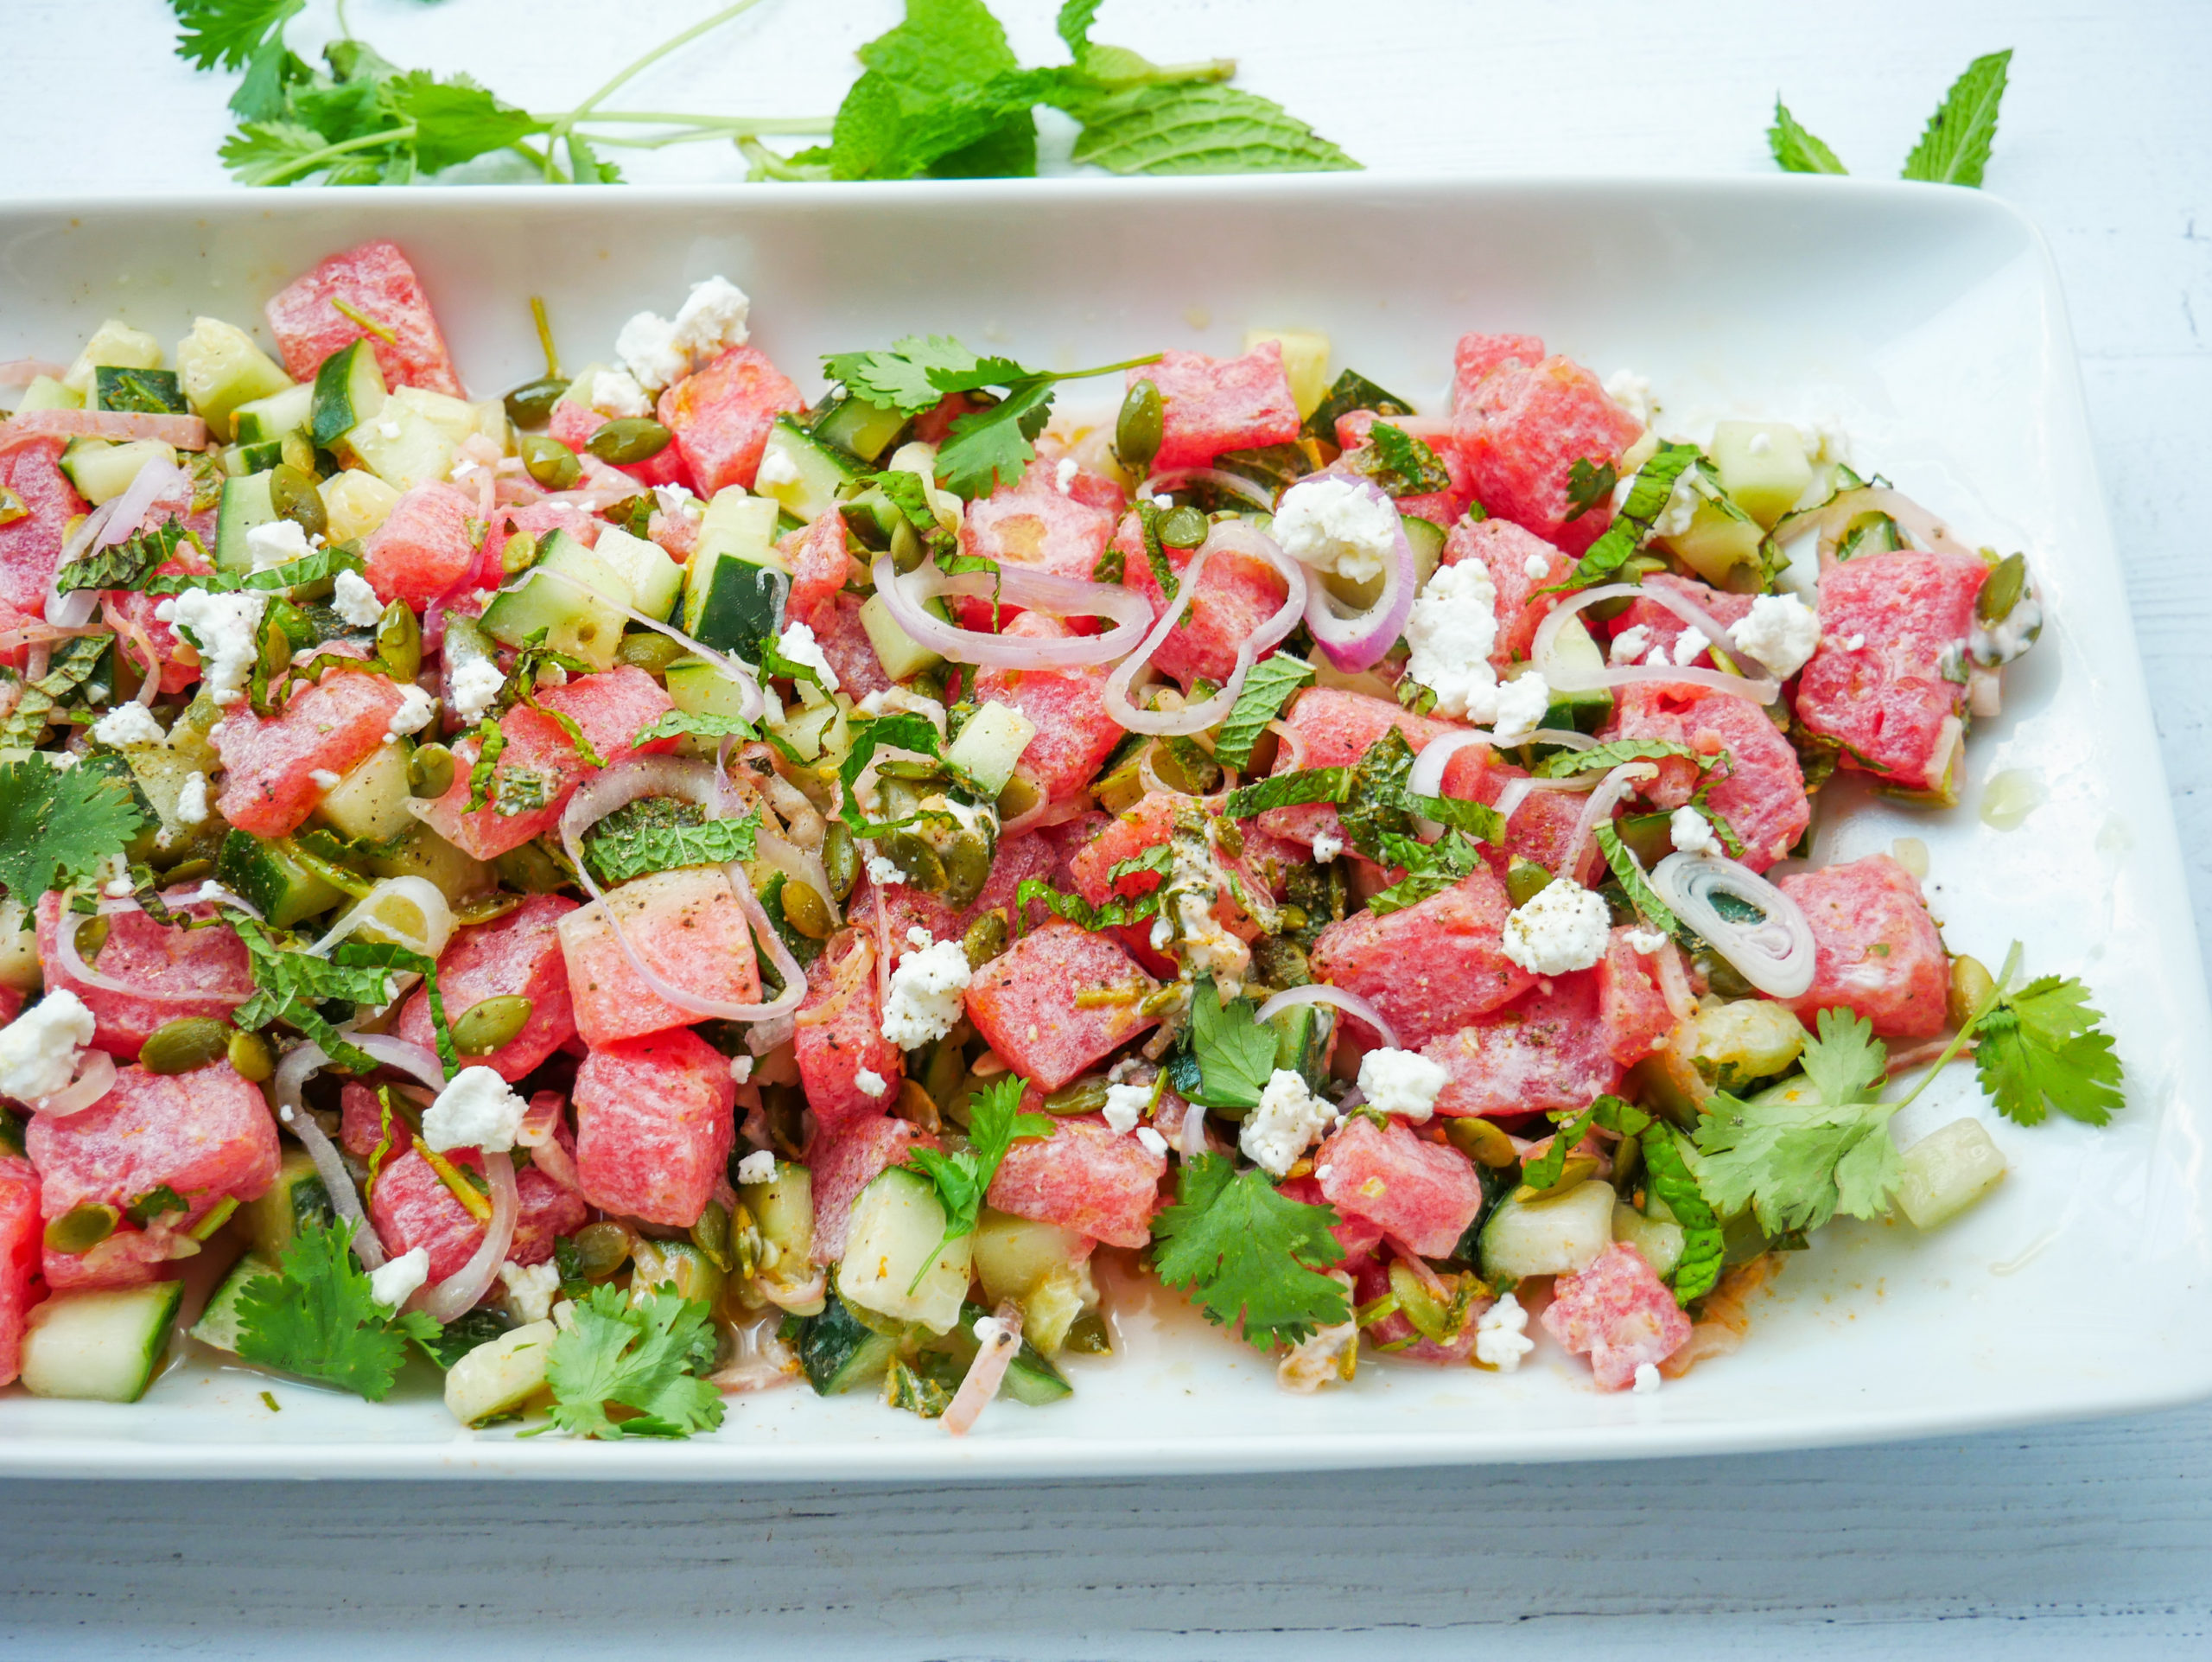 Watermelon, Cucumber and Goat Cheese Salad